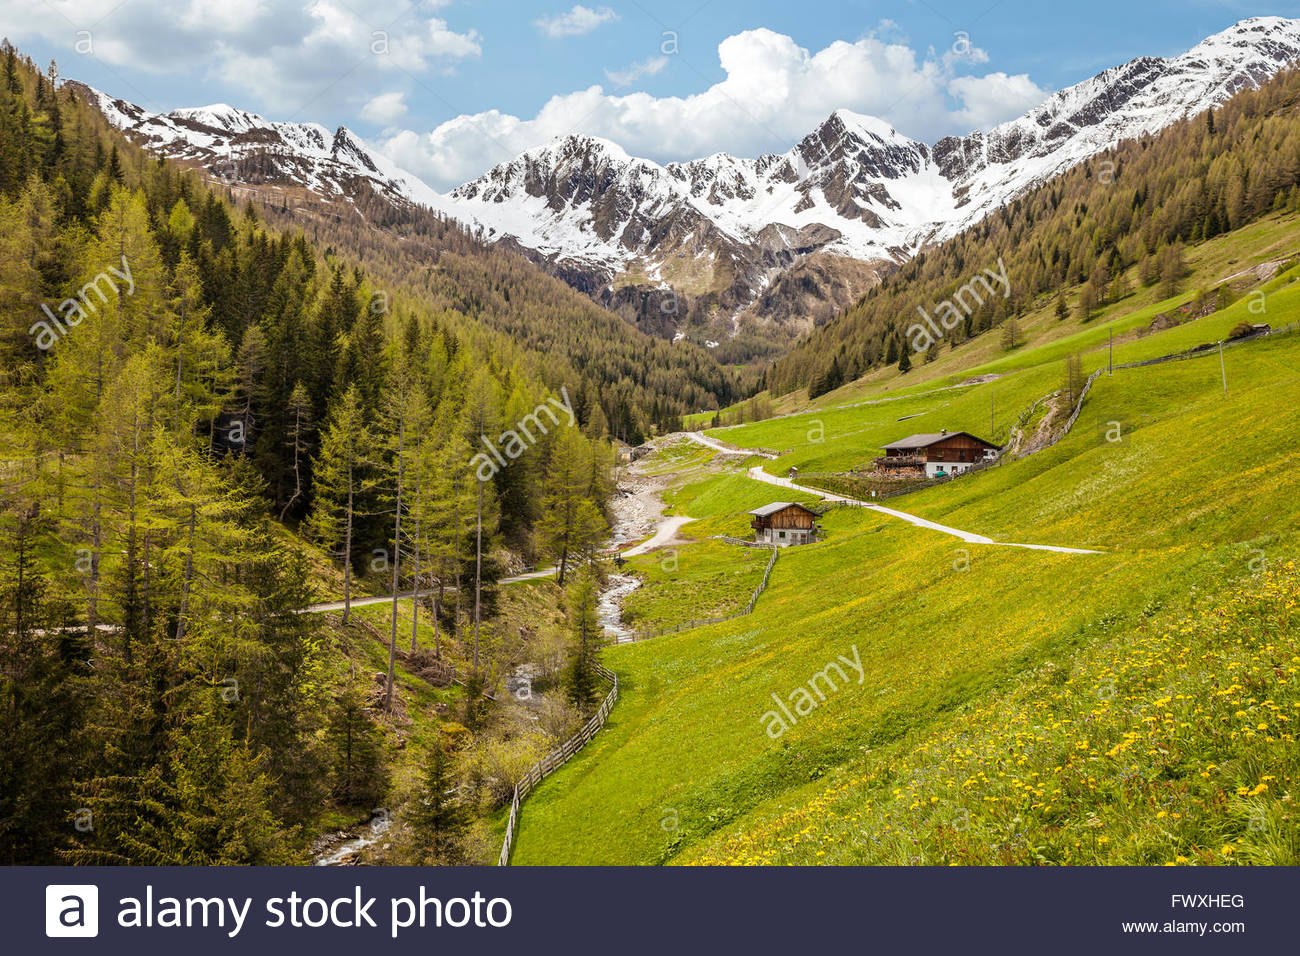 Alp in Campo Tures, South Tyrol, Italy - Stock Image